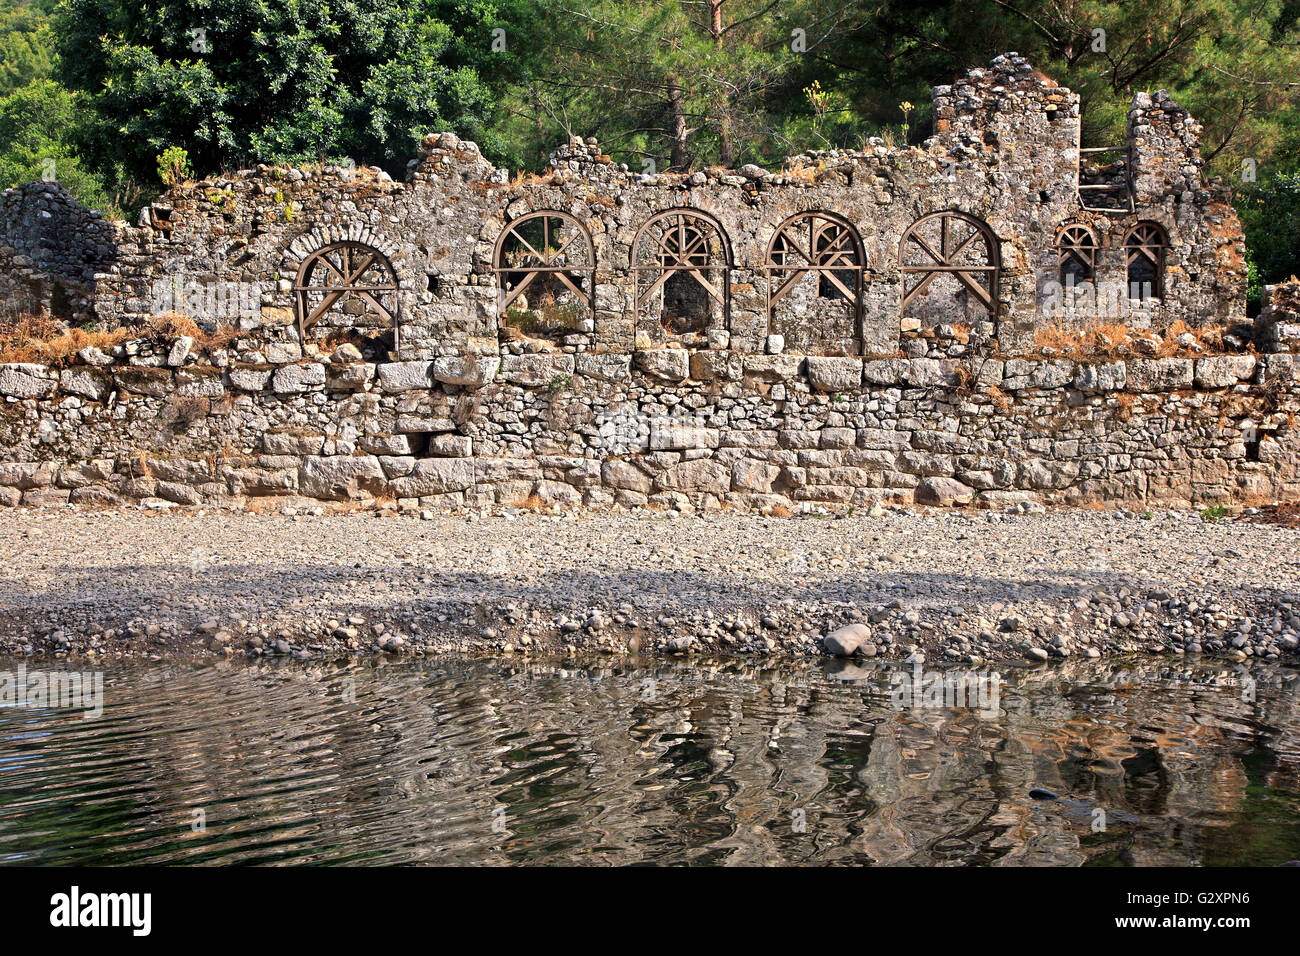 Ruins of ancient public baths at the archaeological site of Olympos, Lycia, Antalya province, Turkey. - Stock Image